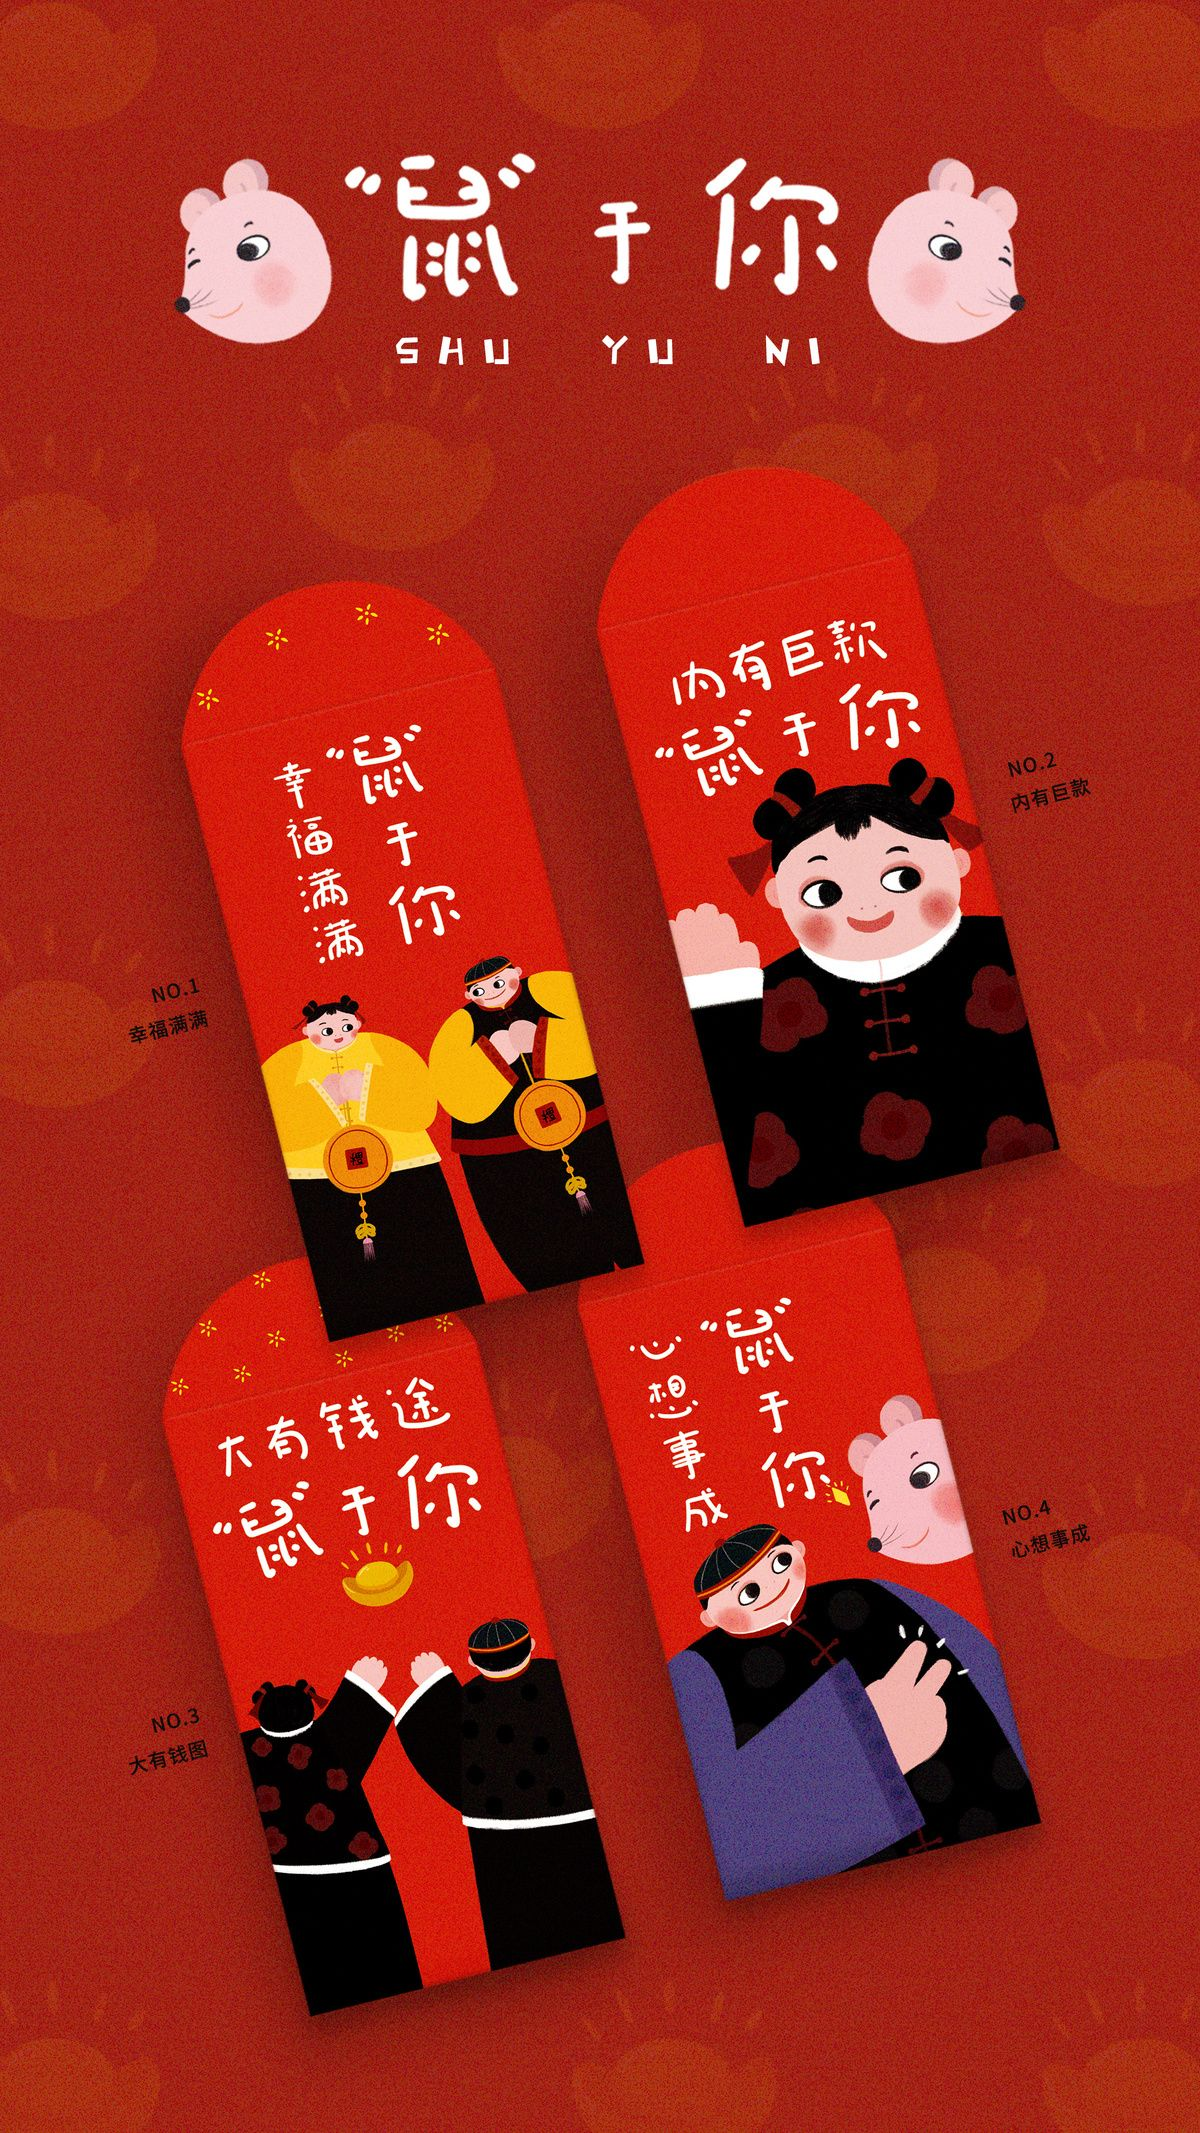 Pin by Winnie Lee on CNY Chinese new year design, New